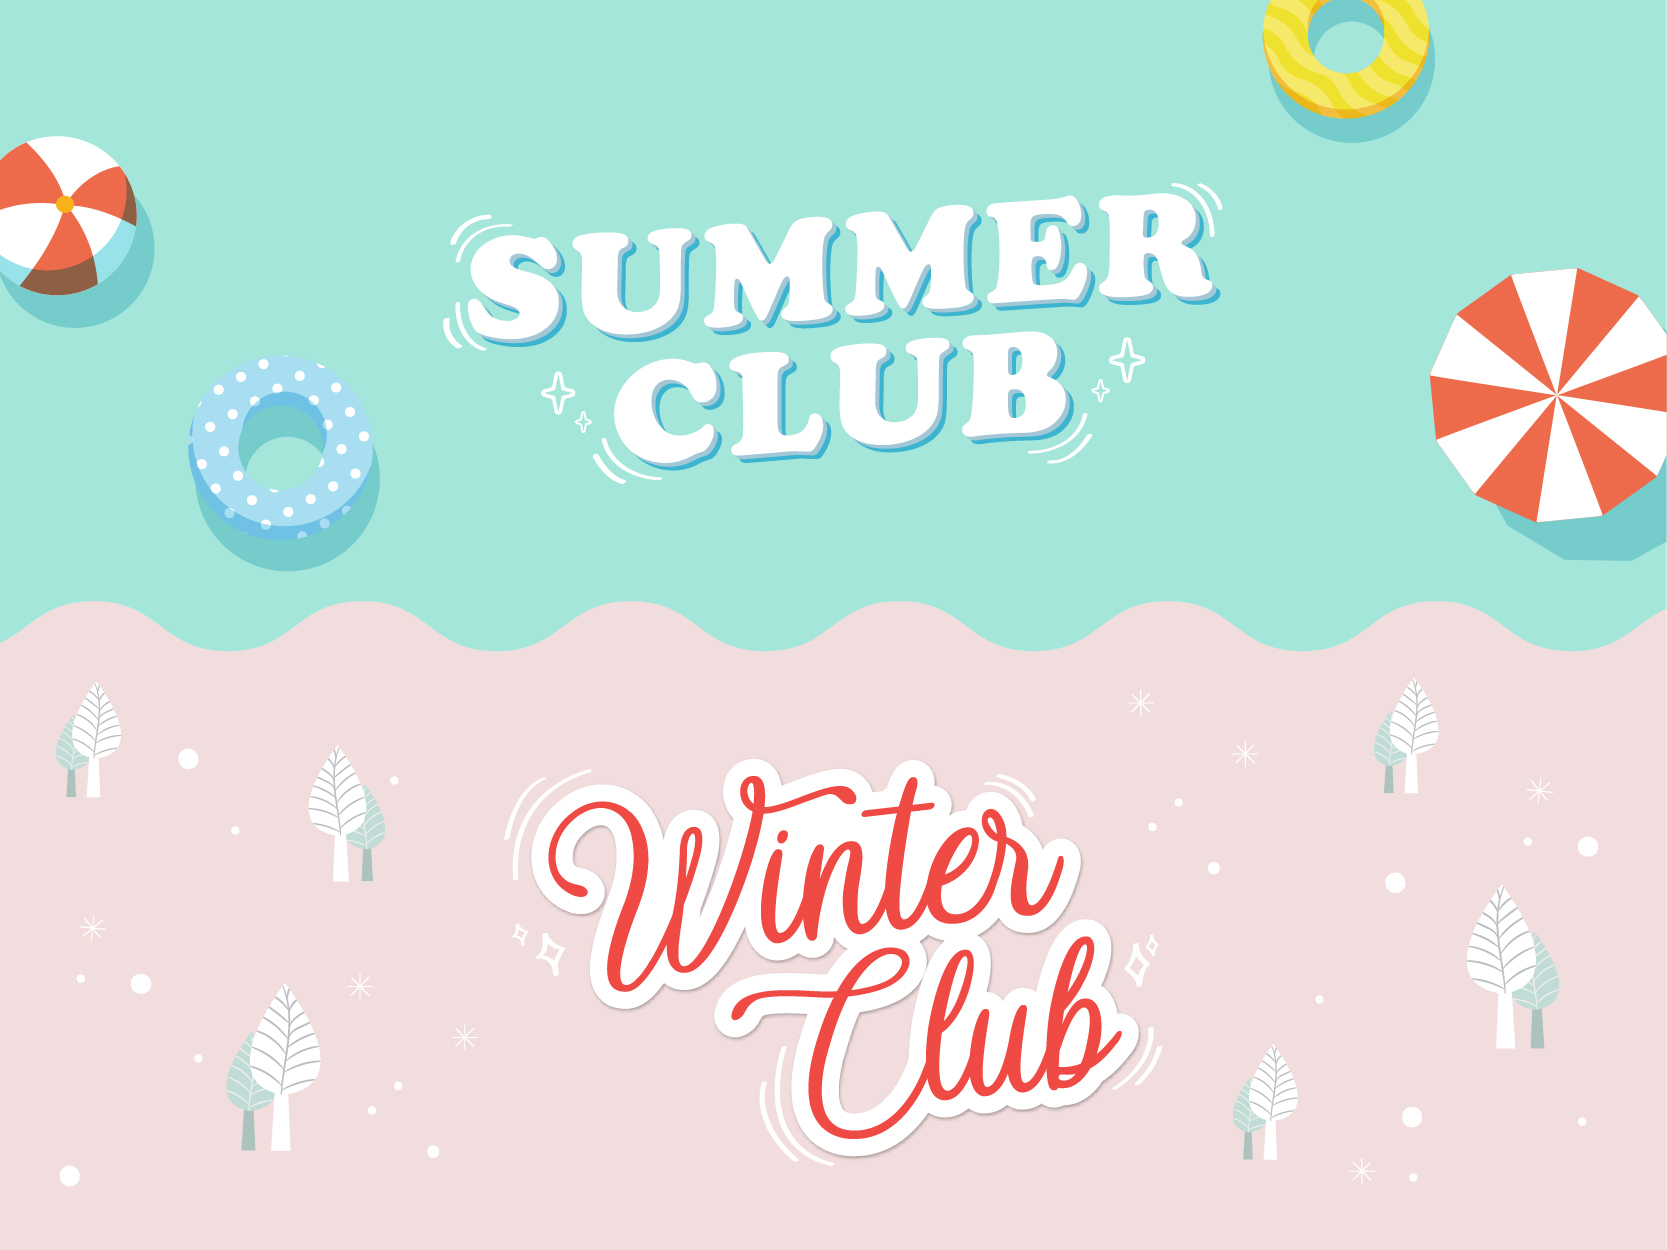 Summer and winter club image